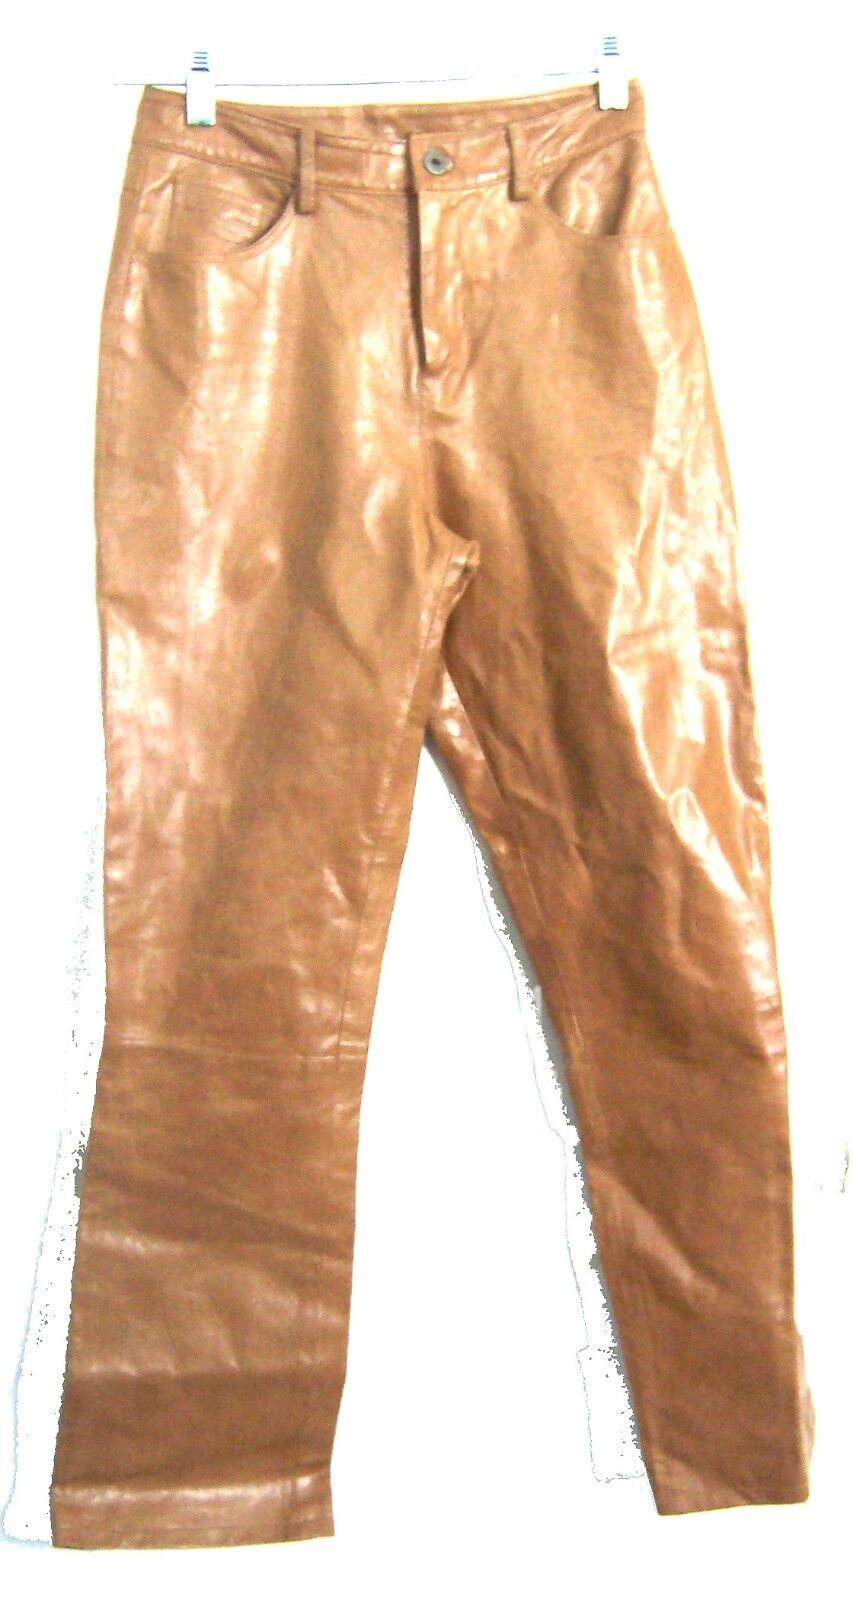 Sz S - Camel Brown 100% Genuine Leather Pants